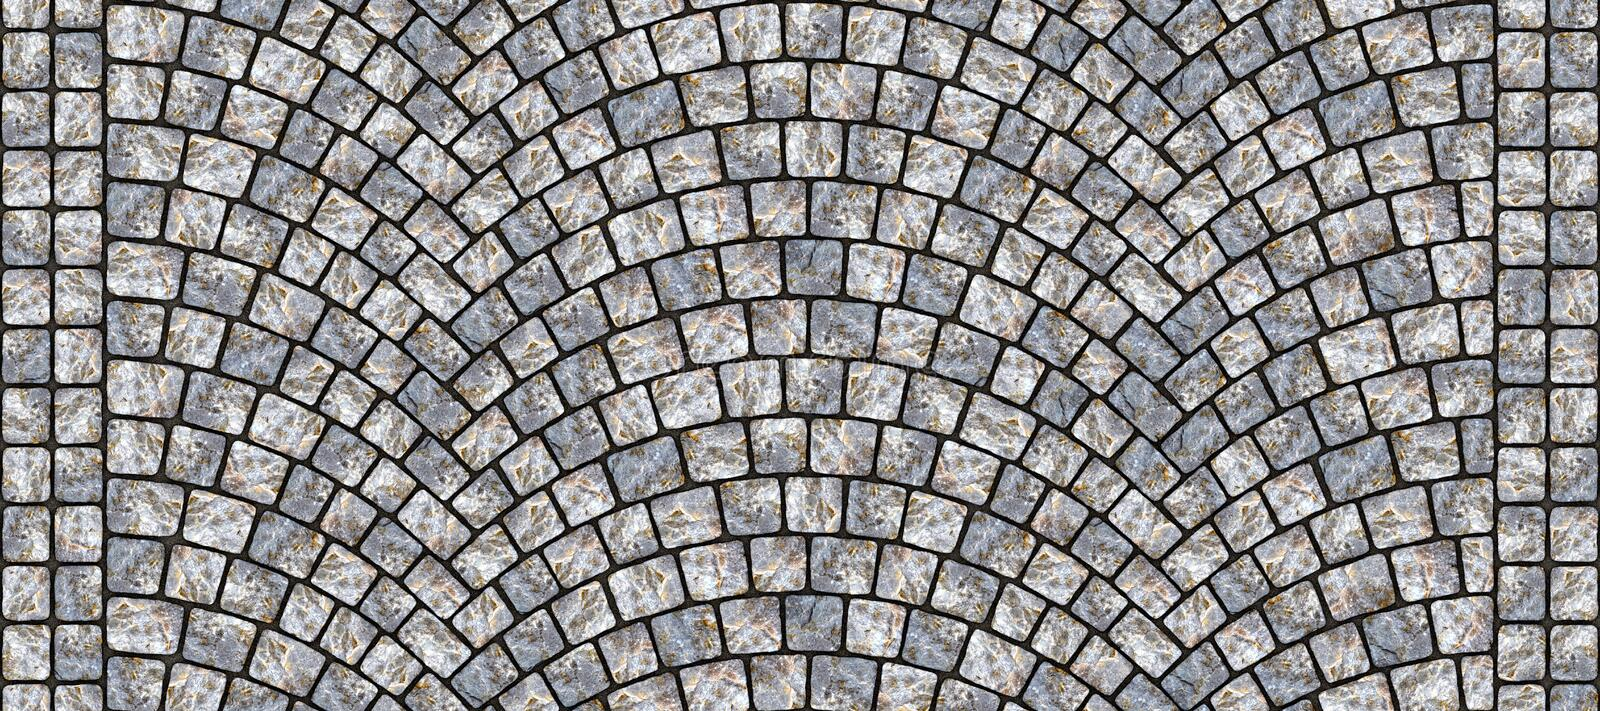 Road curved cobblestone texture 098. Cobblestone arched pavement road with edge courses at the sidewalk. Seamless tileable repeating 3D rendering texture vector illustration